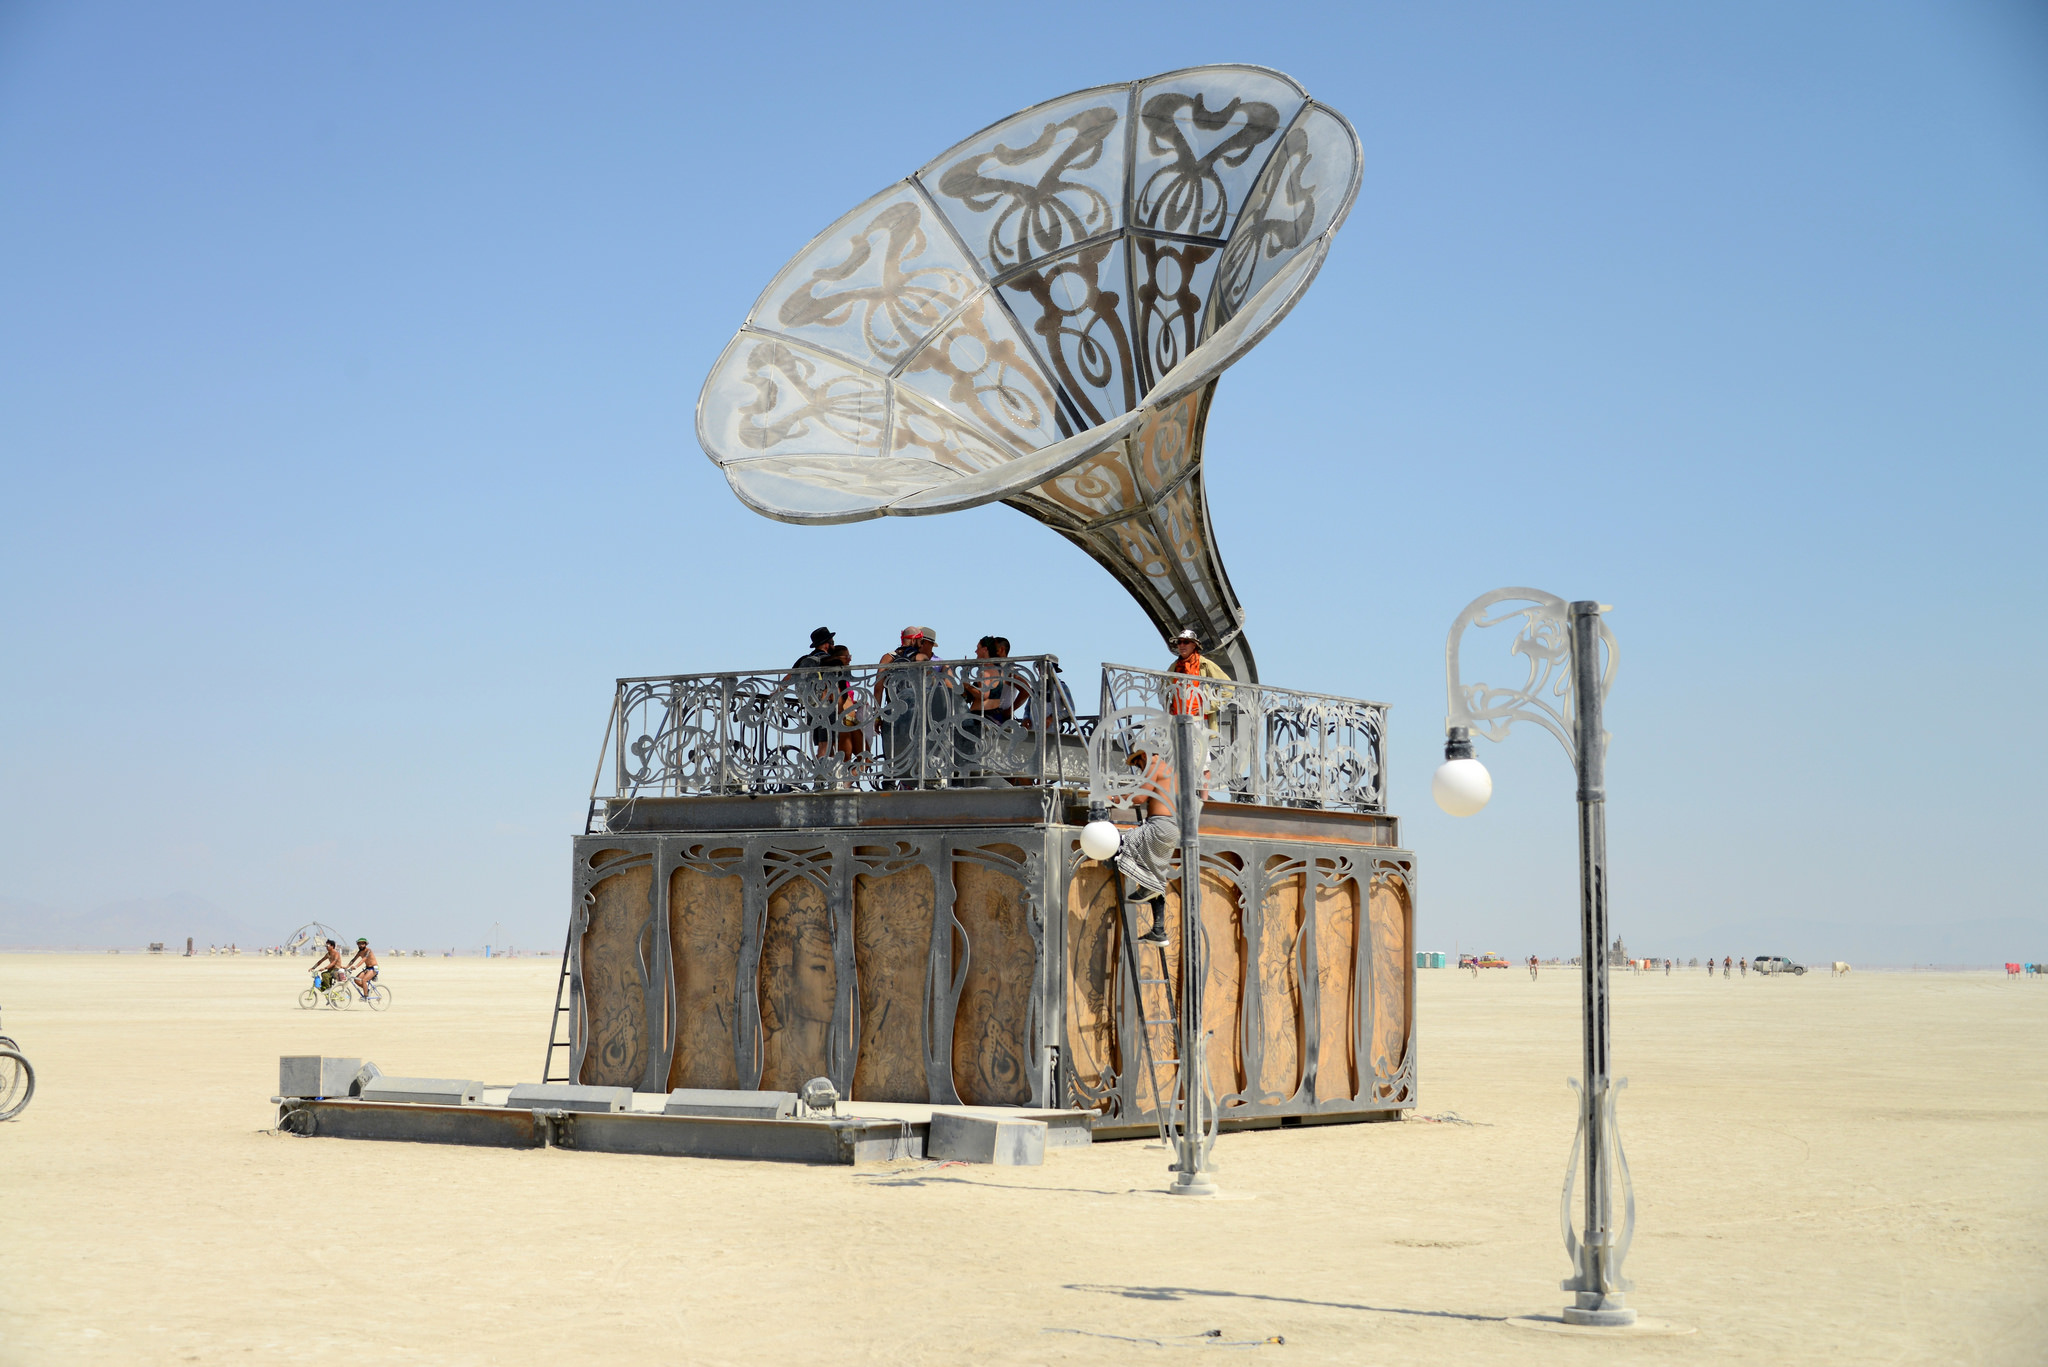 Burning Man 2018: Scenes of pop-up art and architecture